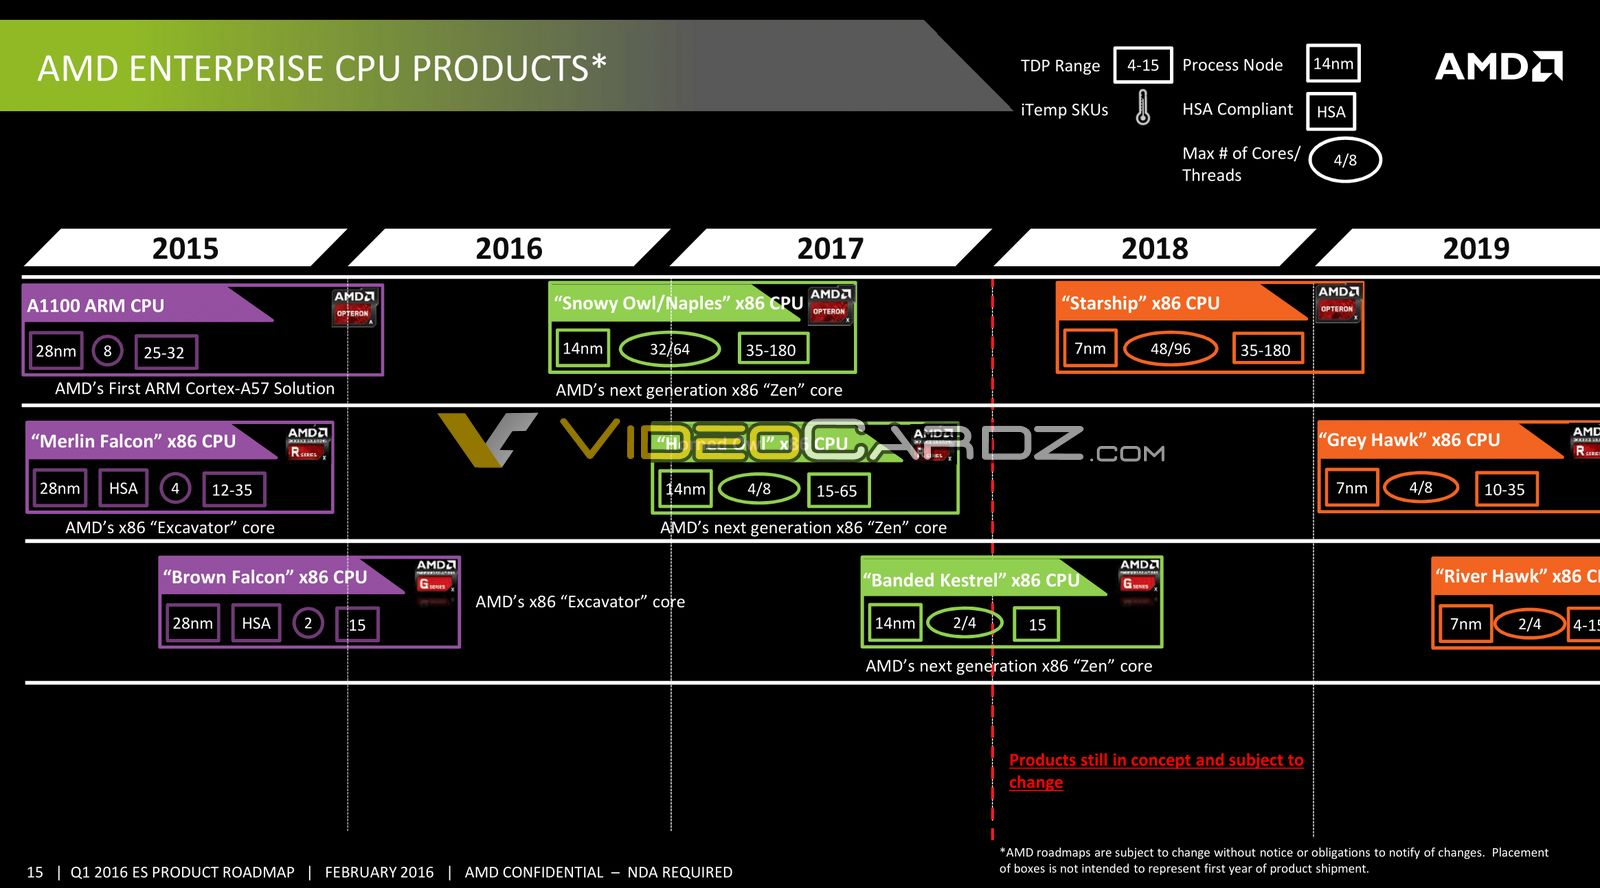 AMD Zen Based Enterprise CPU / APU Roadmap Leaked: 14nm Naples With 32 Cores in 2017, 7nm Starship With 48 Cores  AMD-Enterprise-CPU-2015-2019-Roadmap_1-1